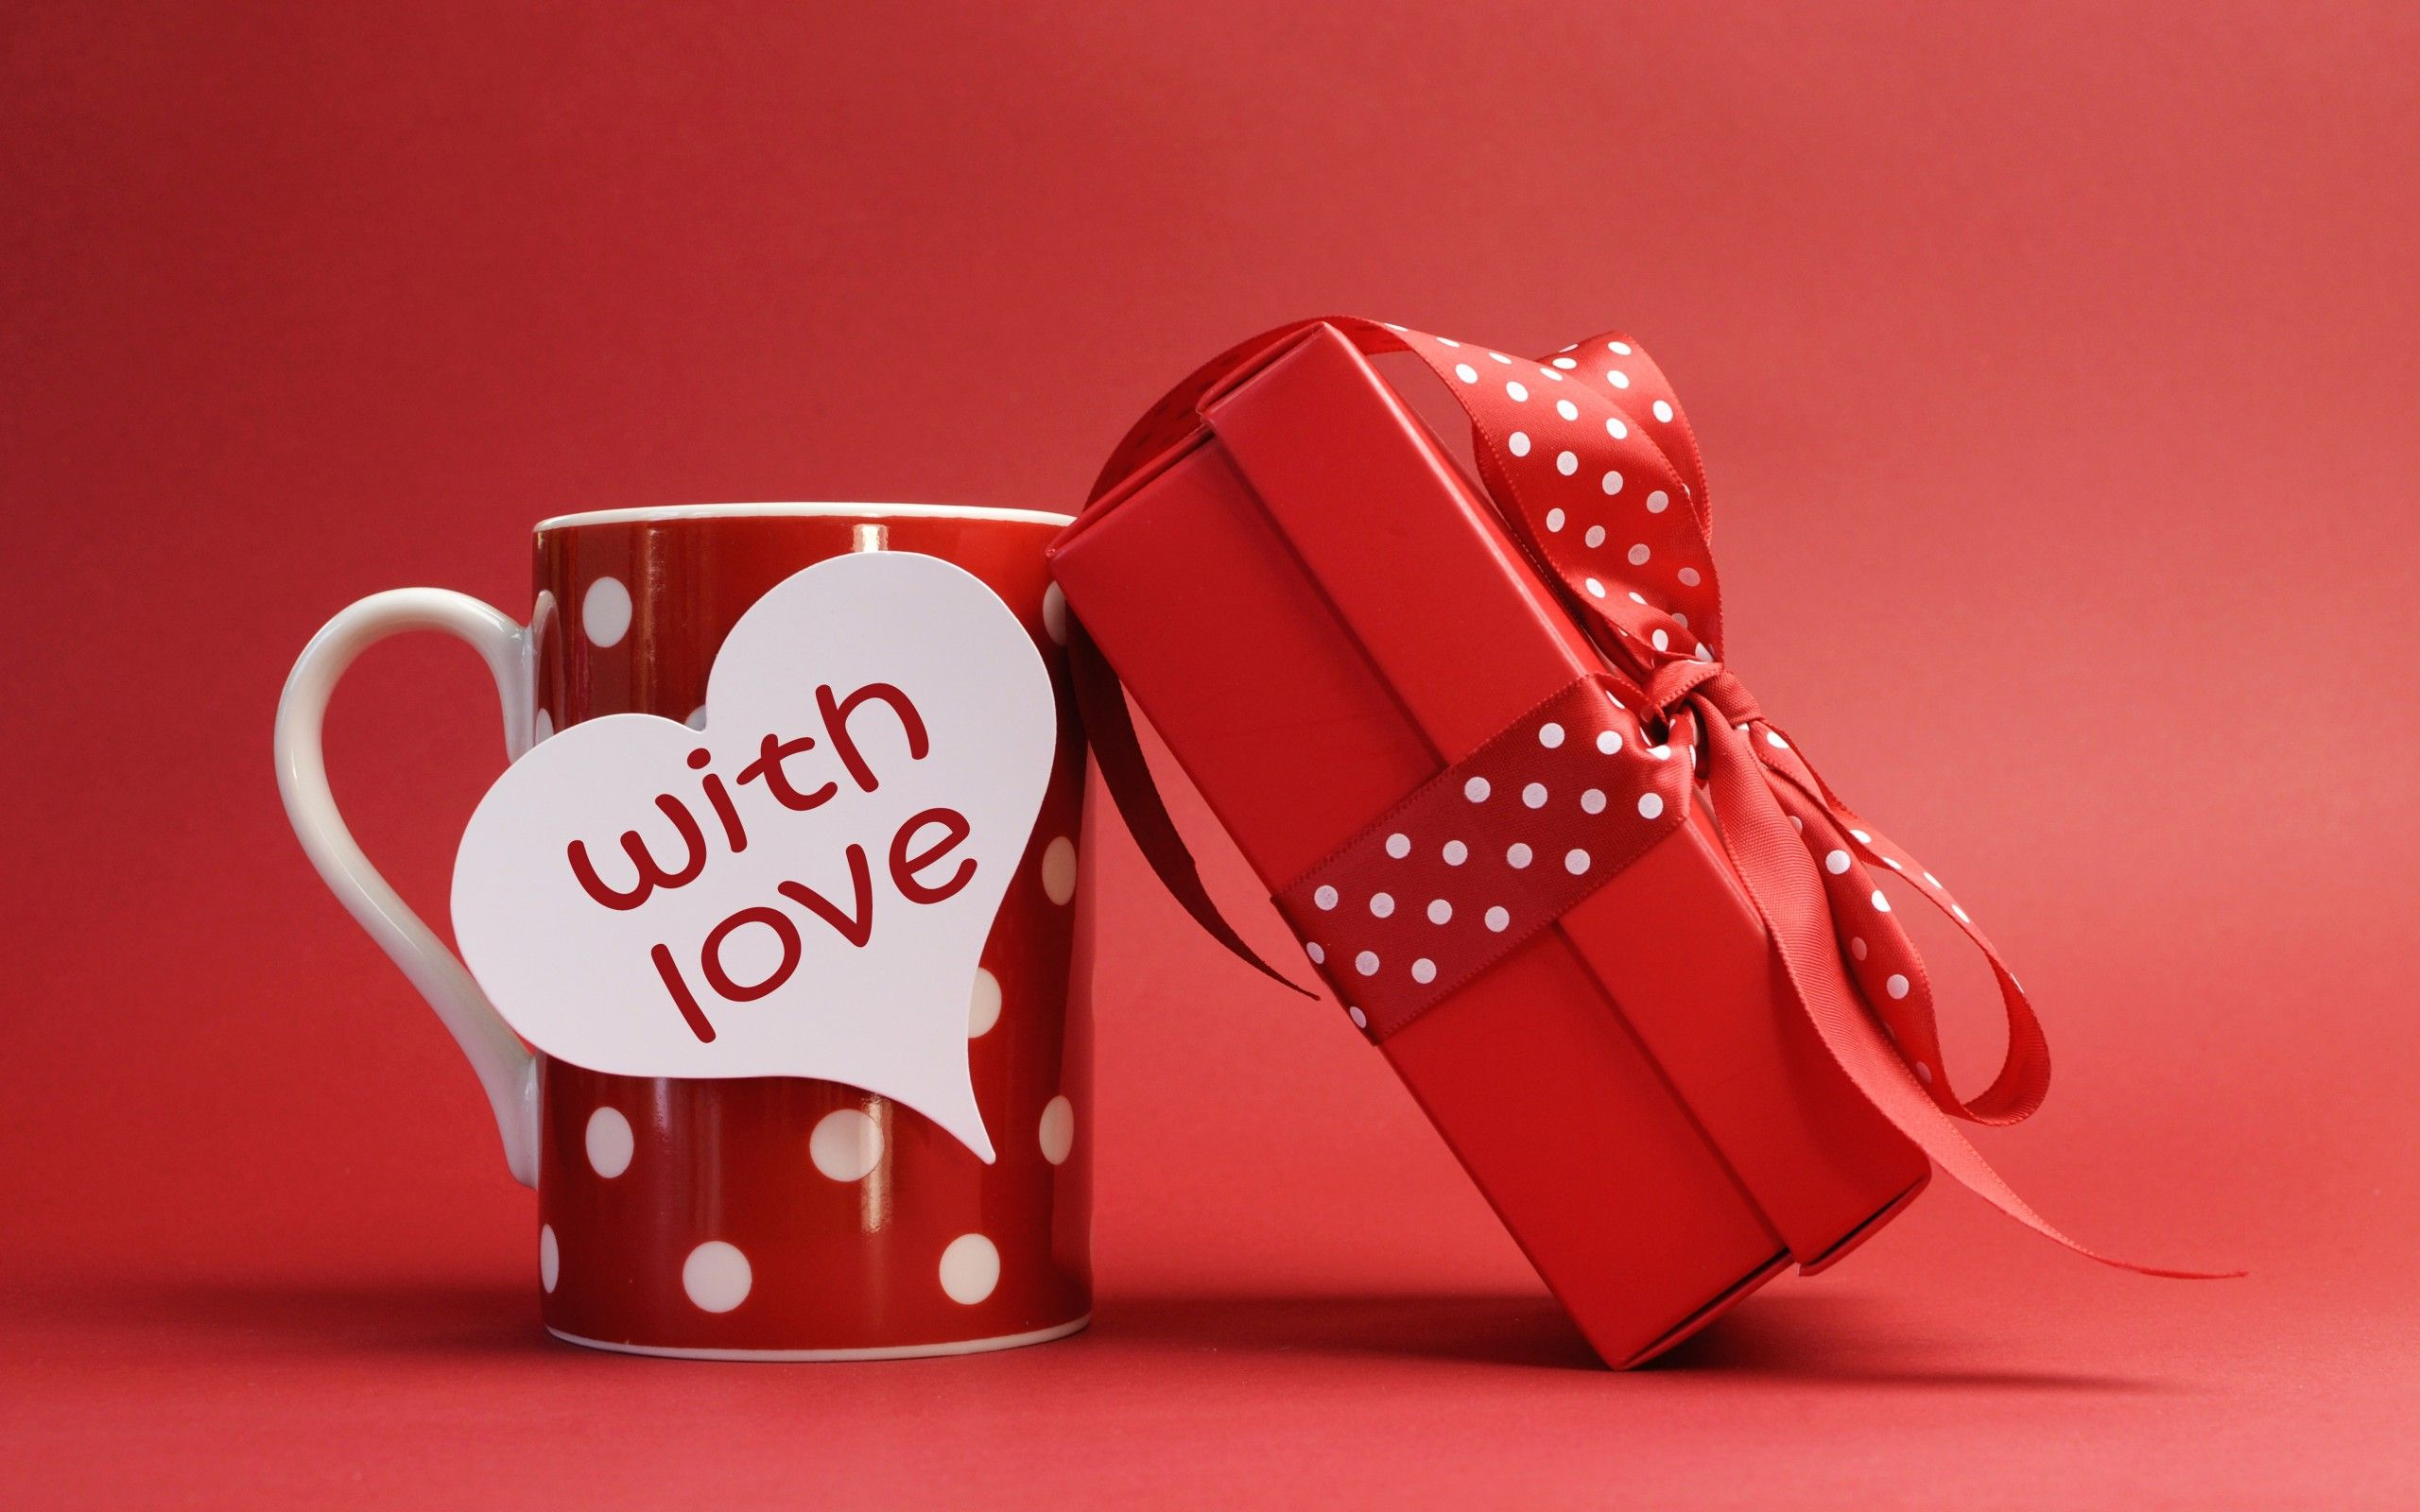 Wallpaper download love you - You Can Download Latest Photo Gallery Of I Love You Hd Wallpapers And Pictures From Hdwallpapersmart